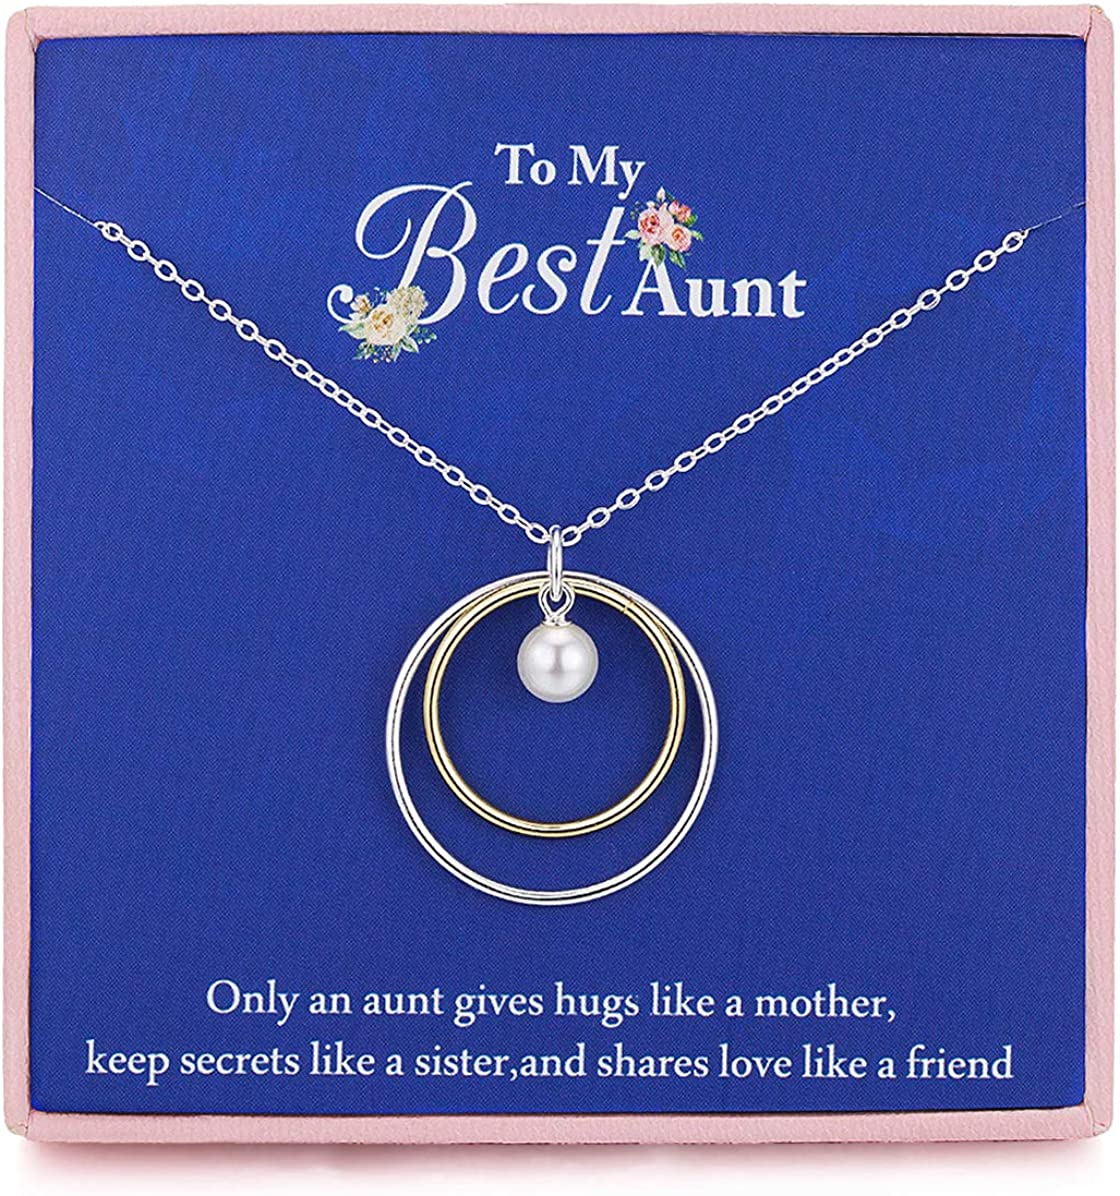 RareLove Best Aunt Gifts 925 Sterling Silver Two Interlocking Infinity Circles One Faux Pearl Pendant Necklace Mothers Day Gift For Aunt From Niece Nephew Adjust Chain From 16